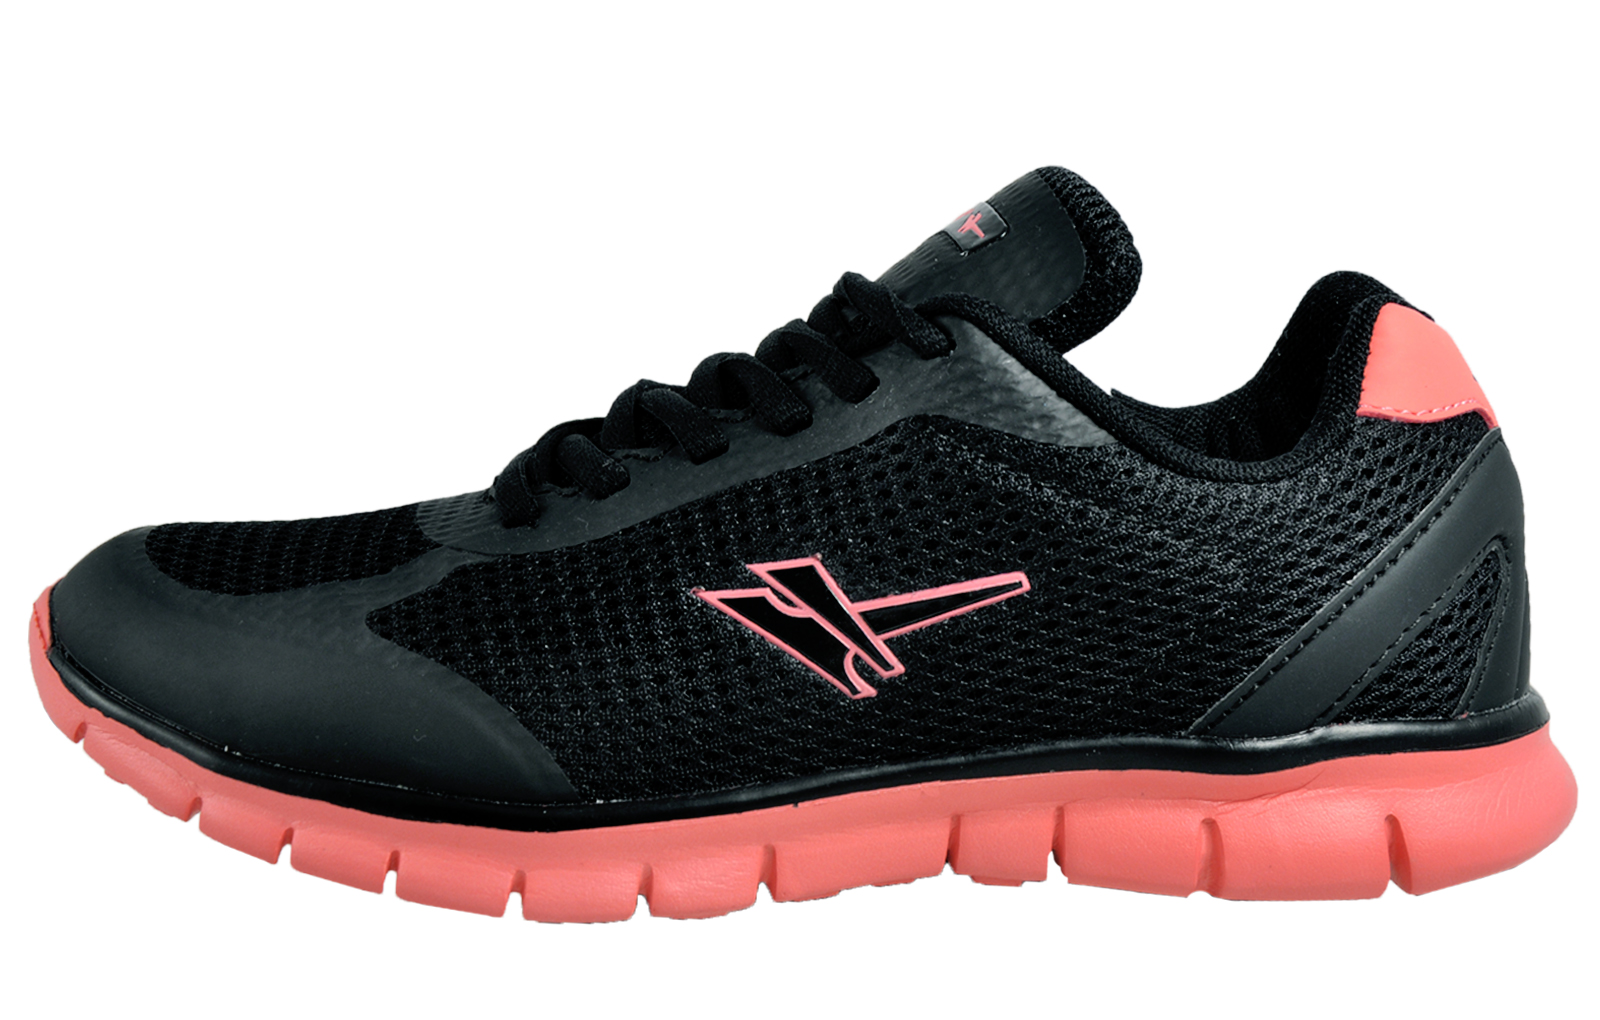 Gola Active Calera Womens Fitness Jogging Gym Trainers Black Pink